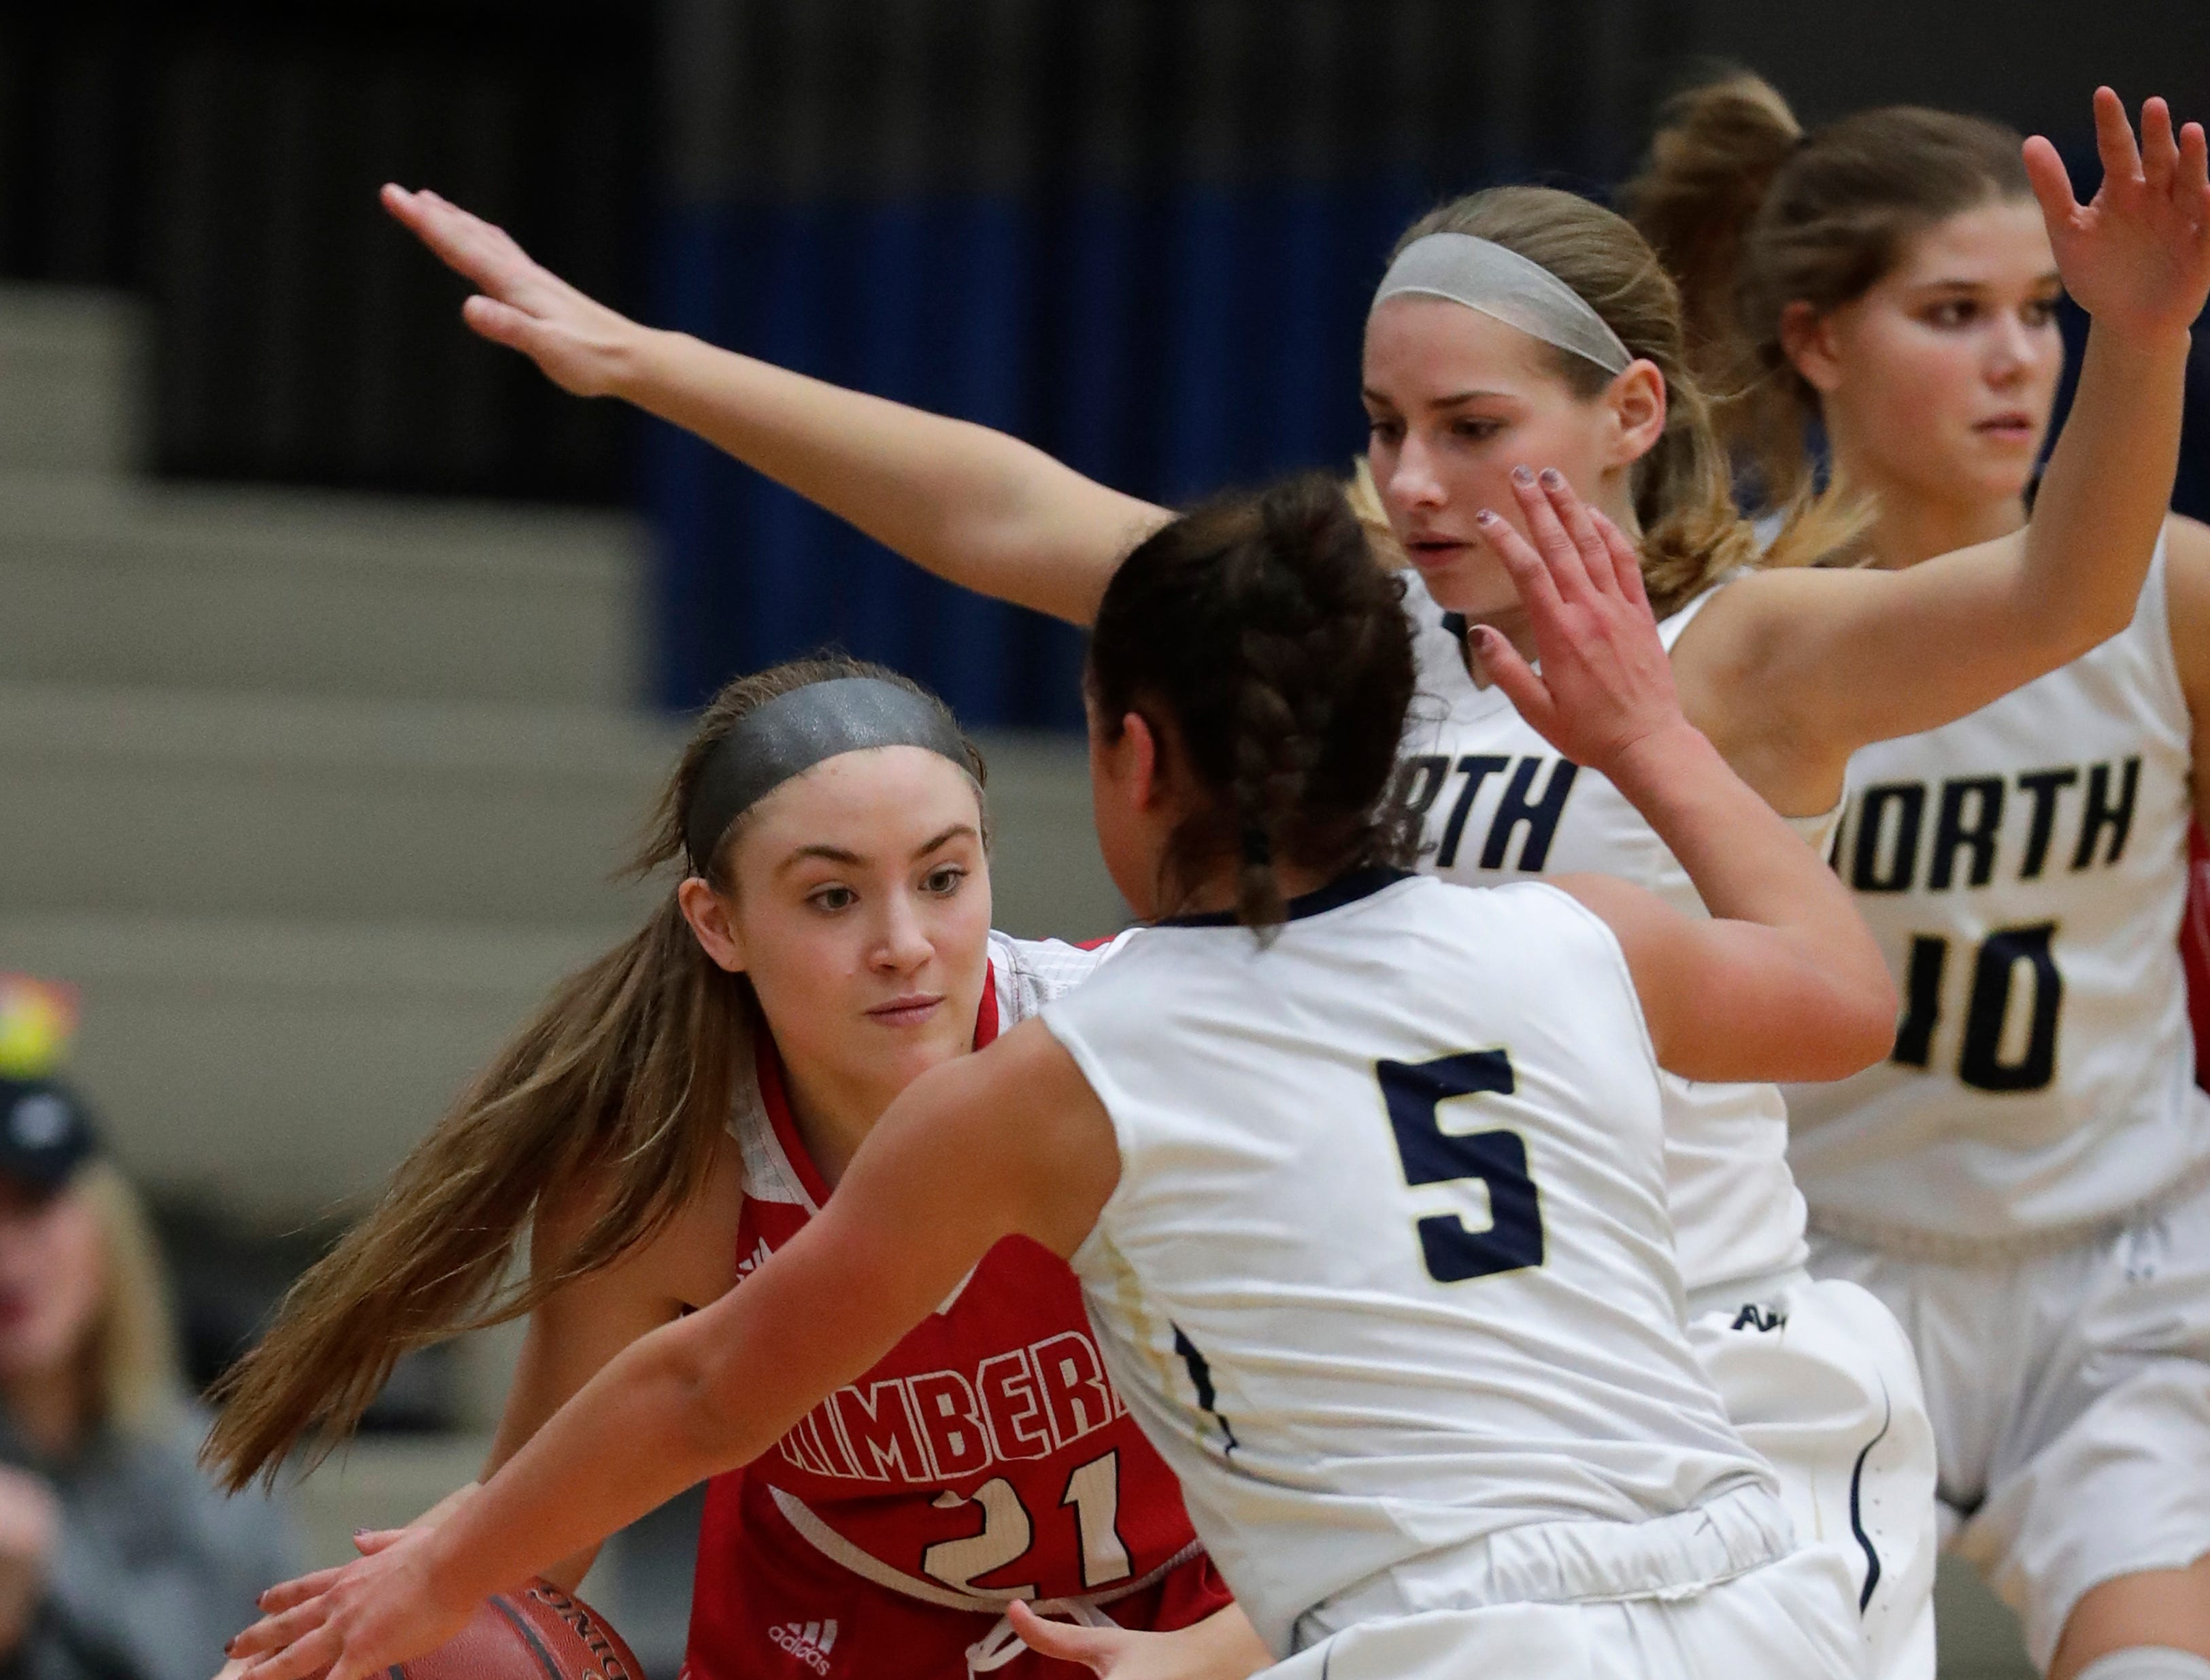 Appleton North High School's Teagan Prusinski (12) and Niki Van Wyk (5) defend against Kimberly High School's Kate Karch (21) during their girls basketball game Tuesday, January 8, 2019, in Appleton, Wis. Dan Powers/USA TODAY NETWORK-Wisconsin